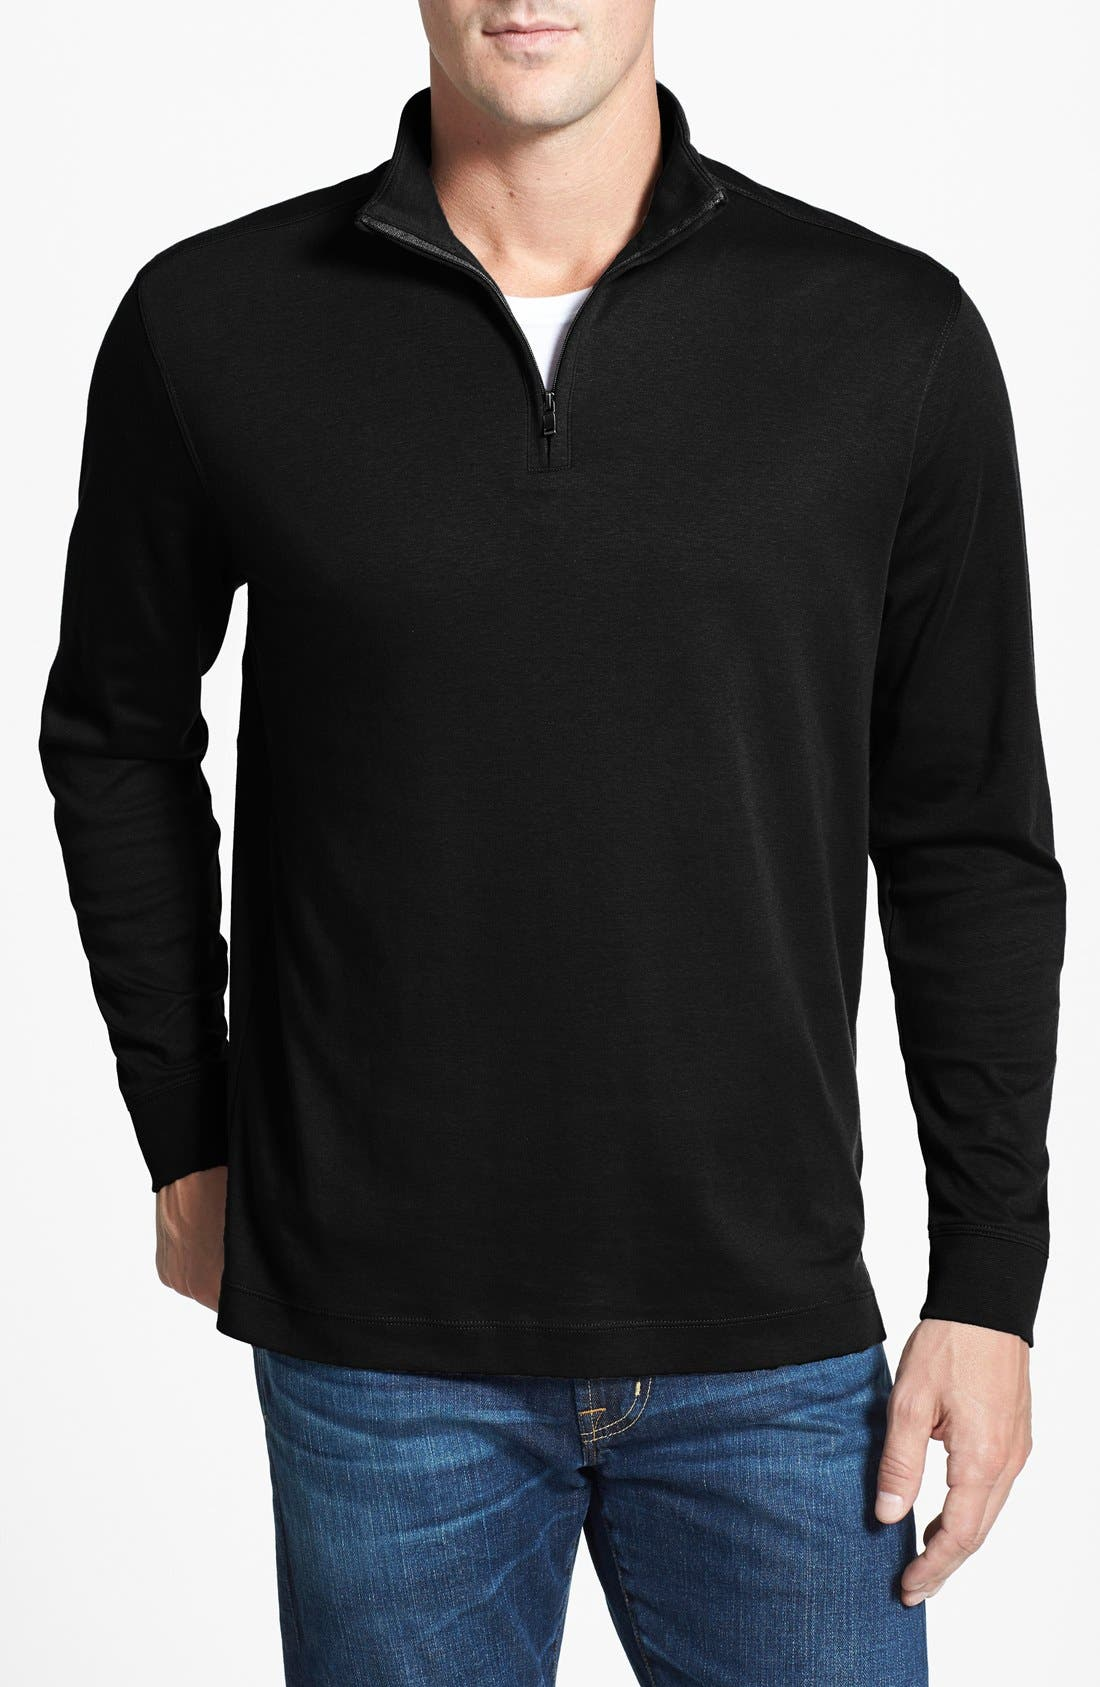 Cutter & Buck Belfair Quarter Zip Pullover